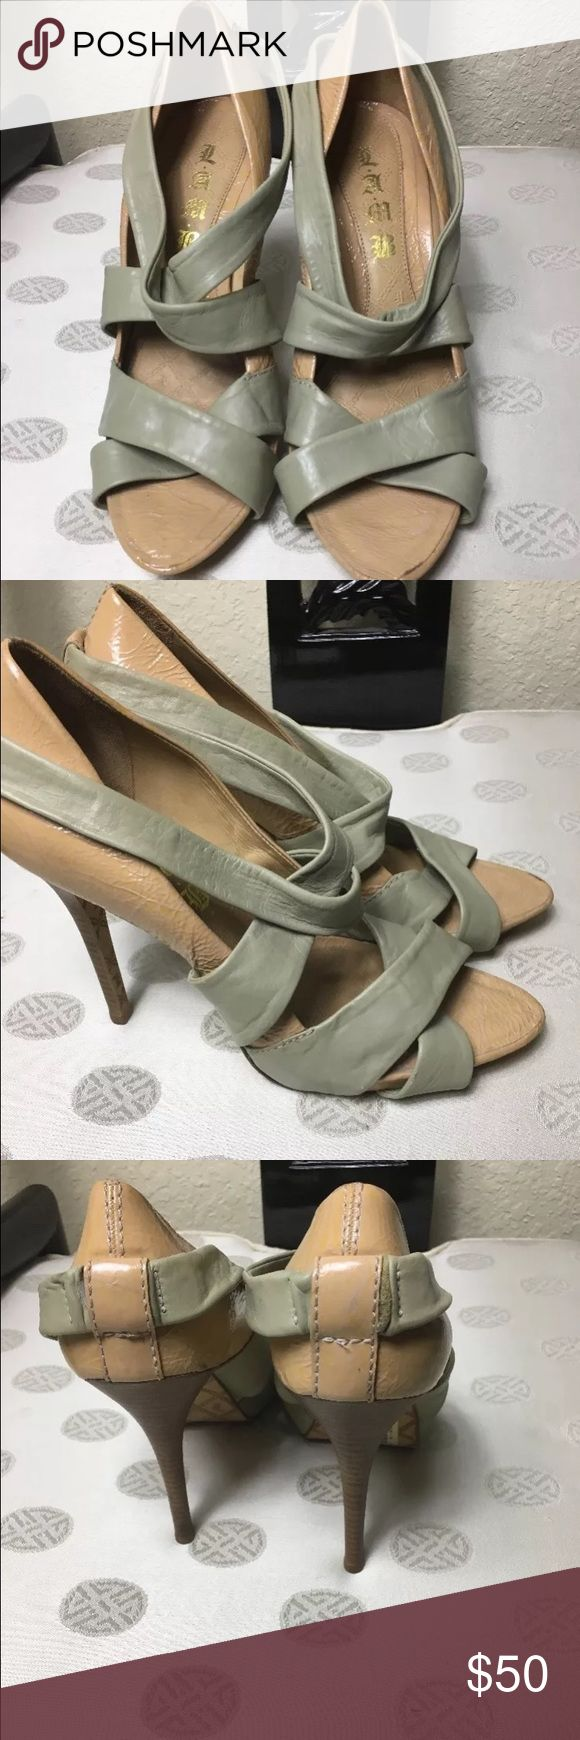 LAMB Beige & Olive Green Suede Tasha Pumps Sz 10 LAMB Beige & Olive Green Suede Tasha Pumps Sz 10 minor scuffs due to wear please see pictures LAMB Shoes Heels